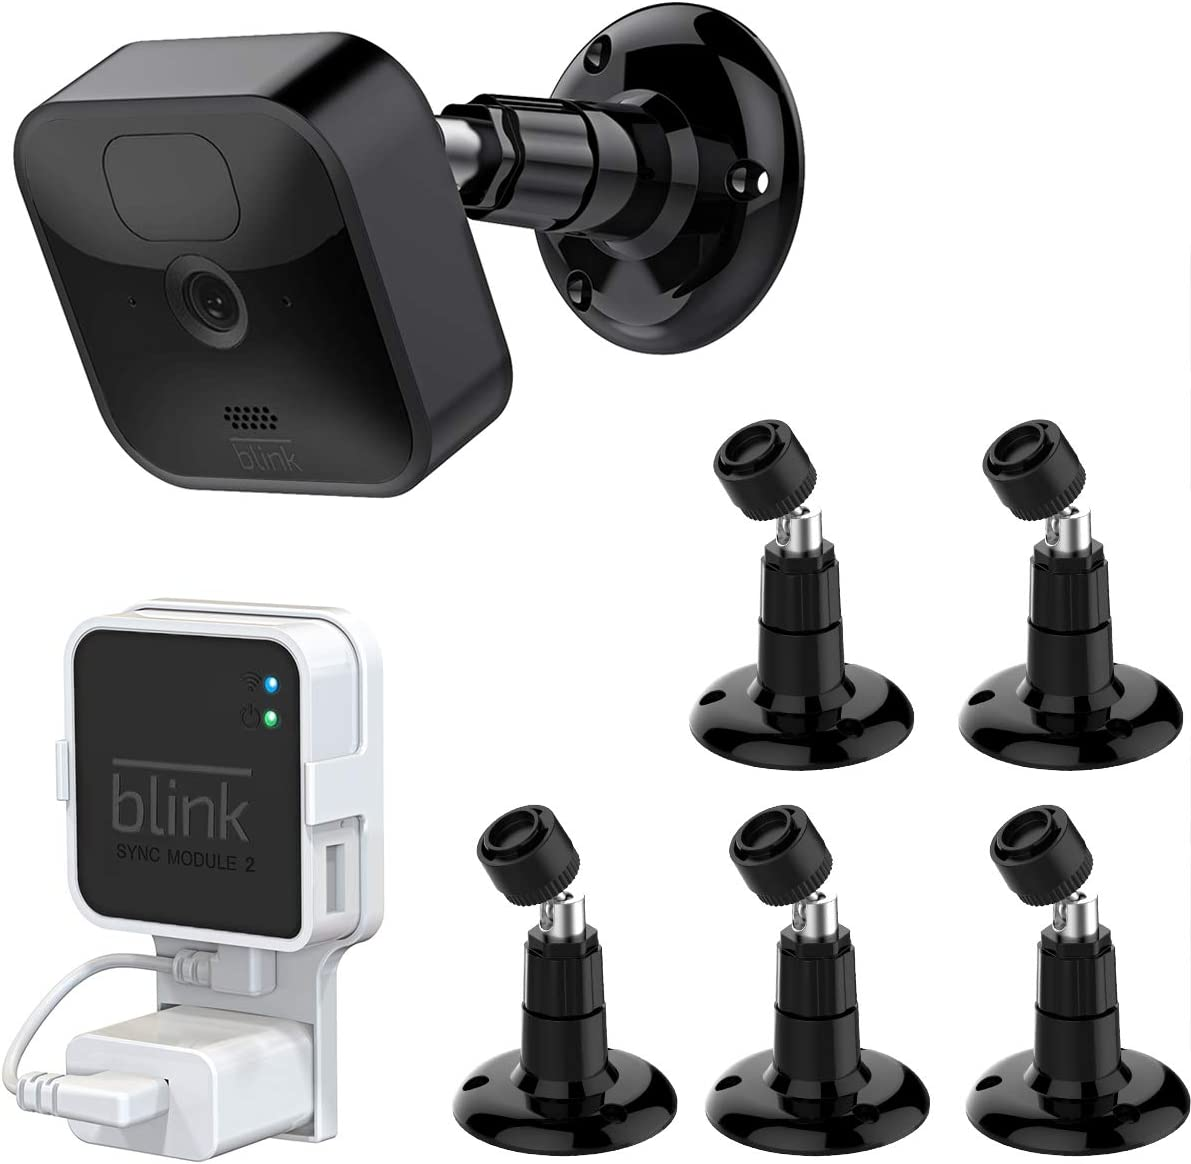 Blink Outdoor Camera Mount, 360 Degree Adjustable Mount with Blink Sync Module 2 Outlet Mount for All-New Blink Outdoor Indoor Security Camera System (Black, 5 Pack)